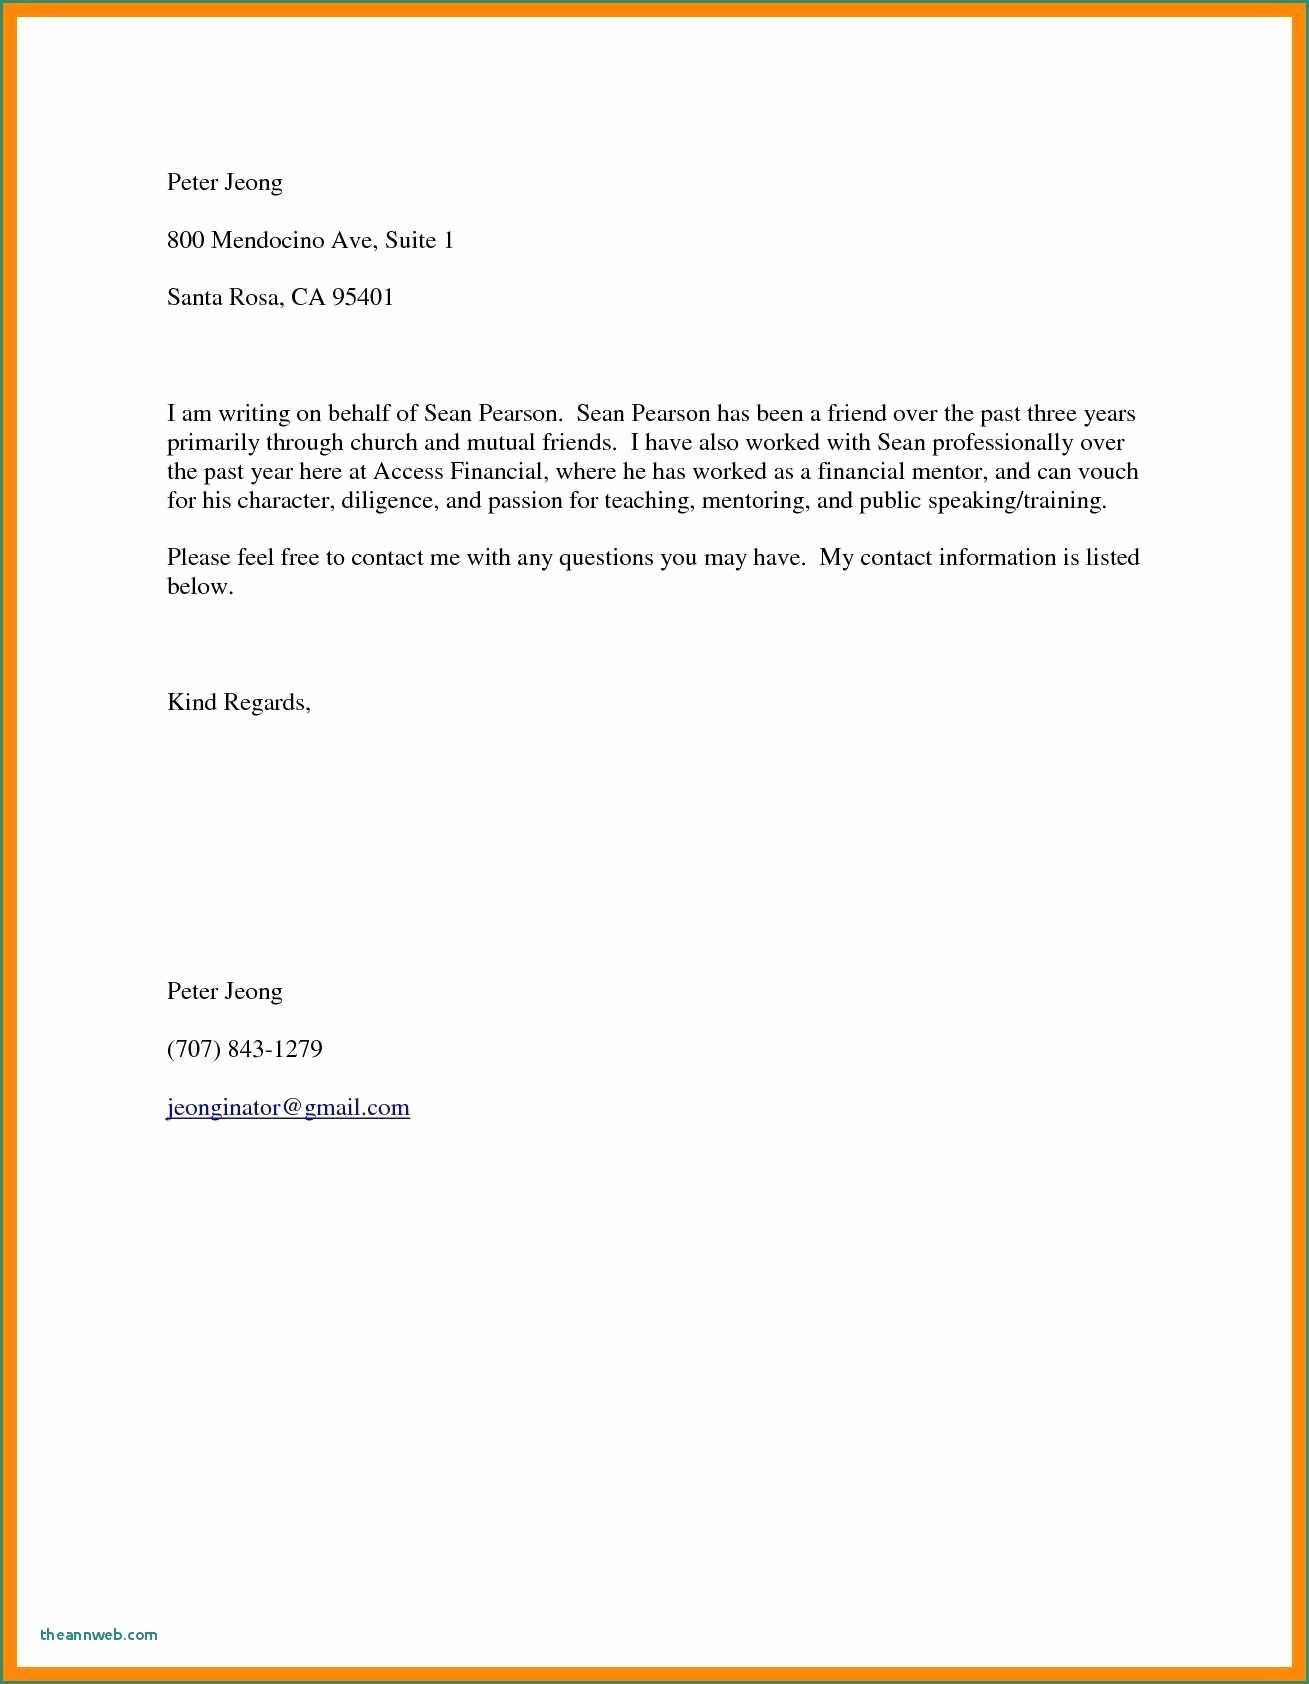 Heading for Letter Of Recommendation Unique 32 Reference Letter Heading format Sample Resume